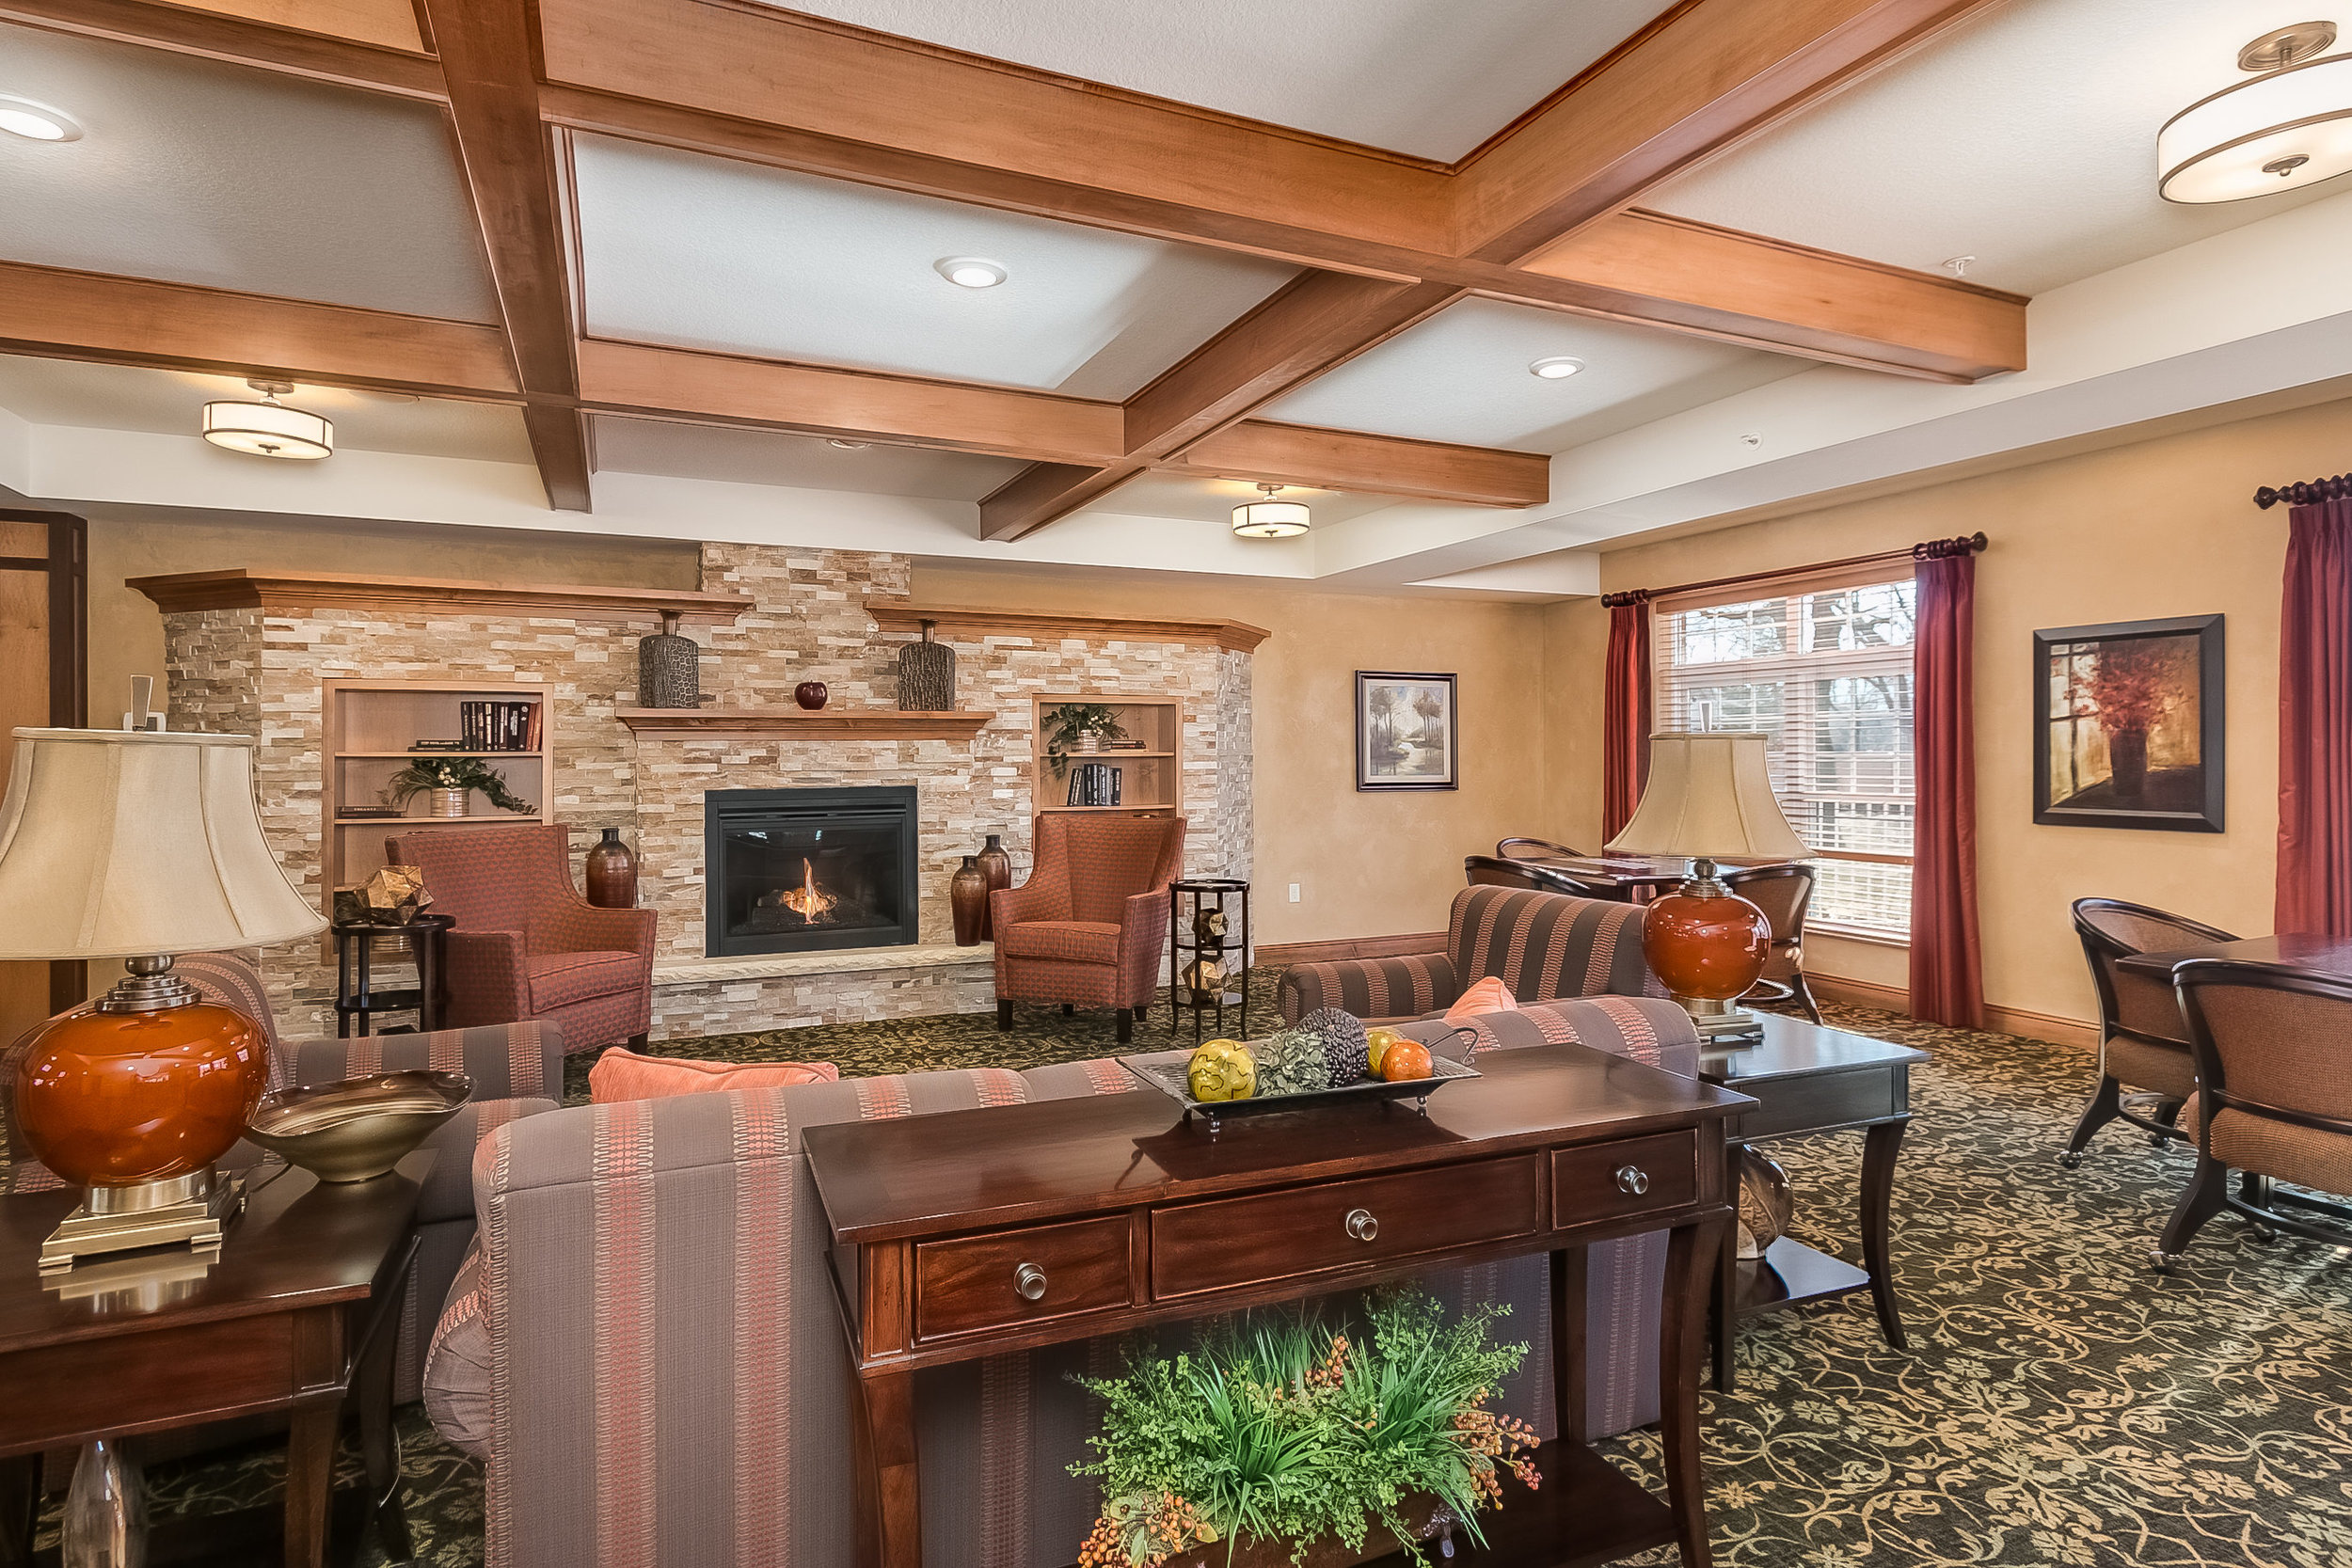 A typical front foyer and seating area to enjoy at Applewood Pointe.